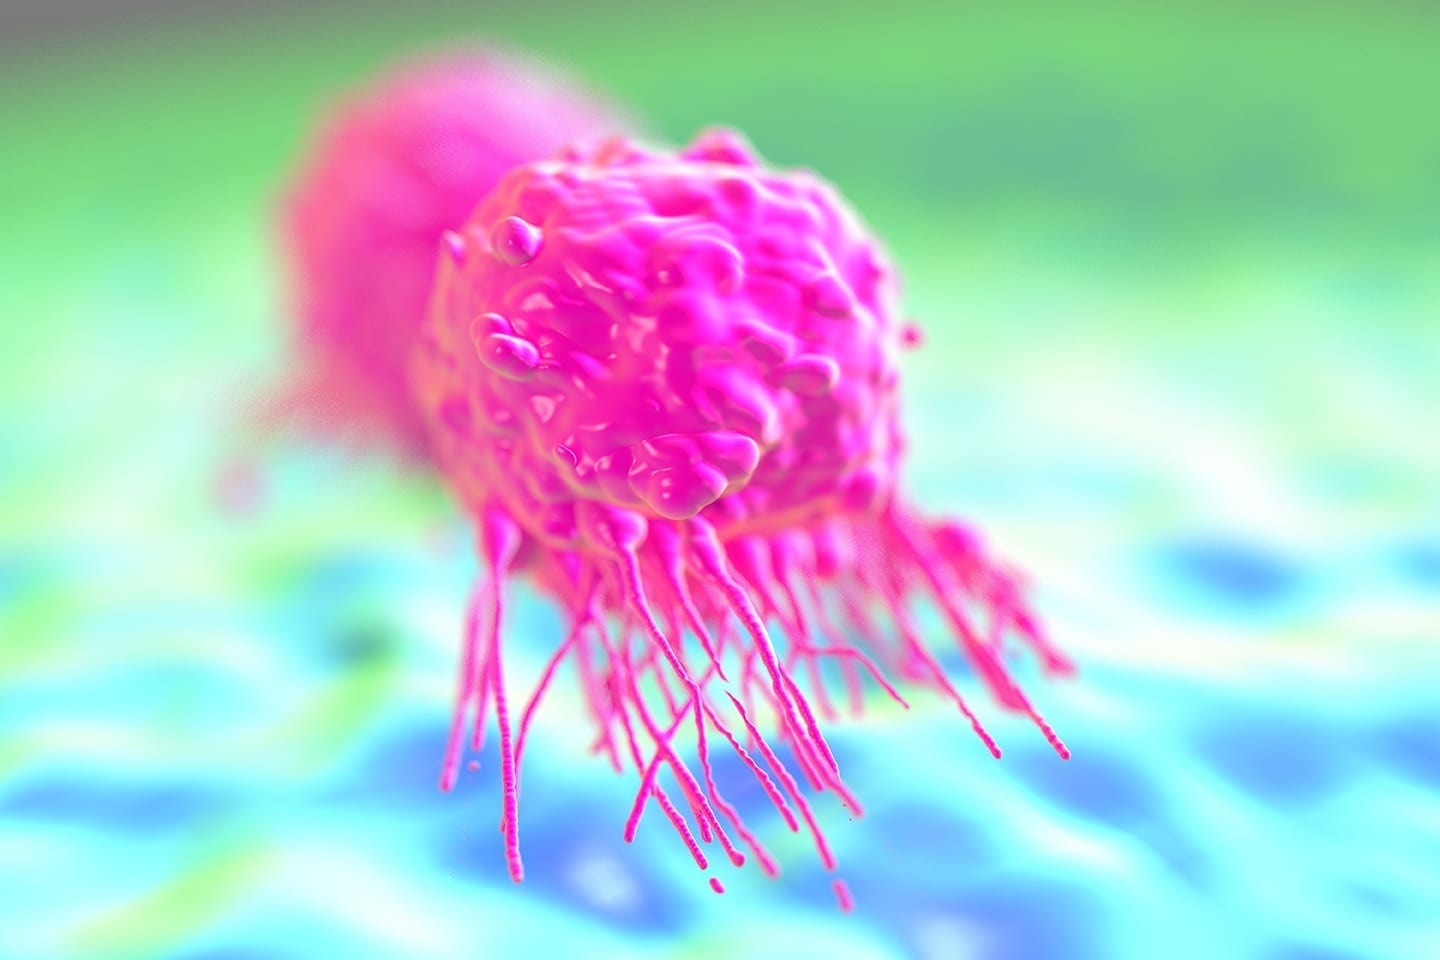 Stock image of pink cancer cell on green and blue background